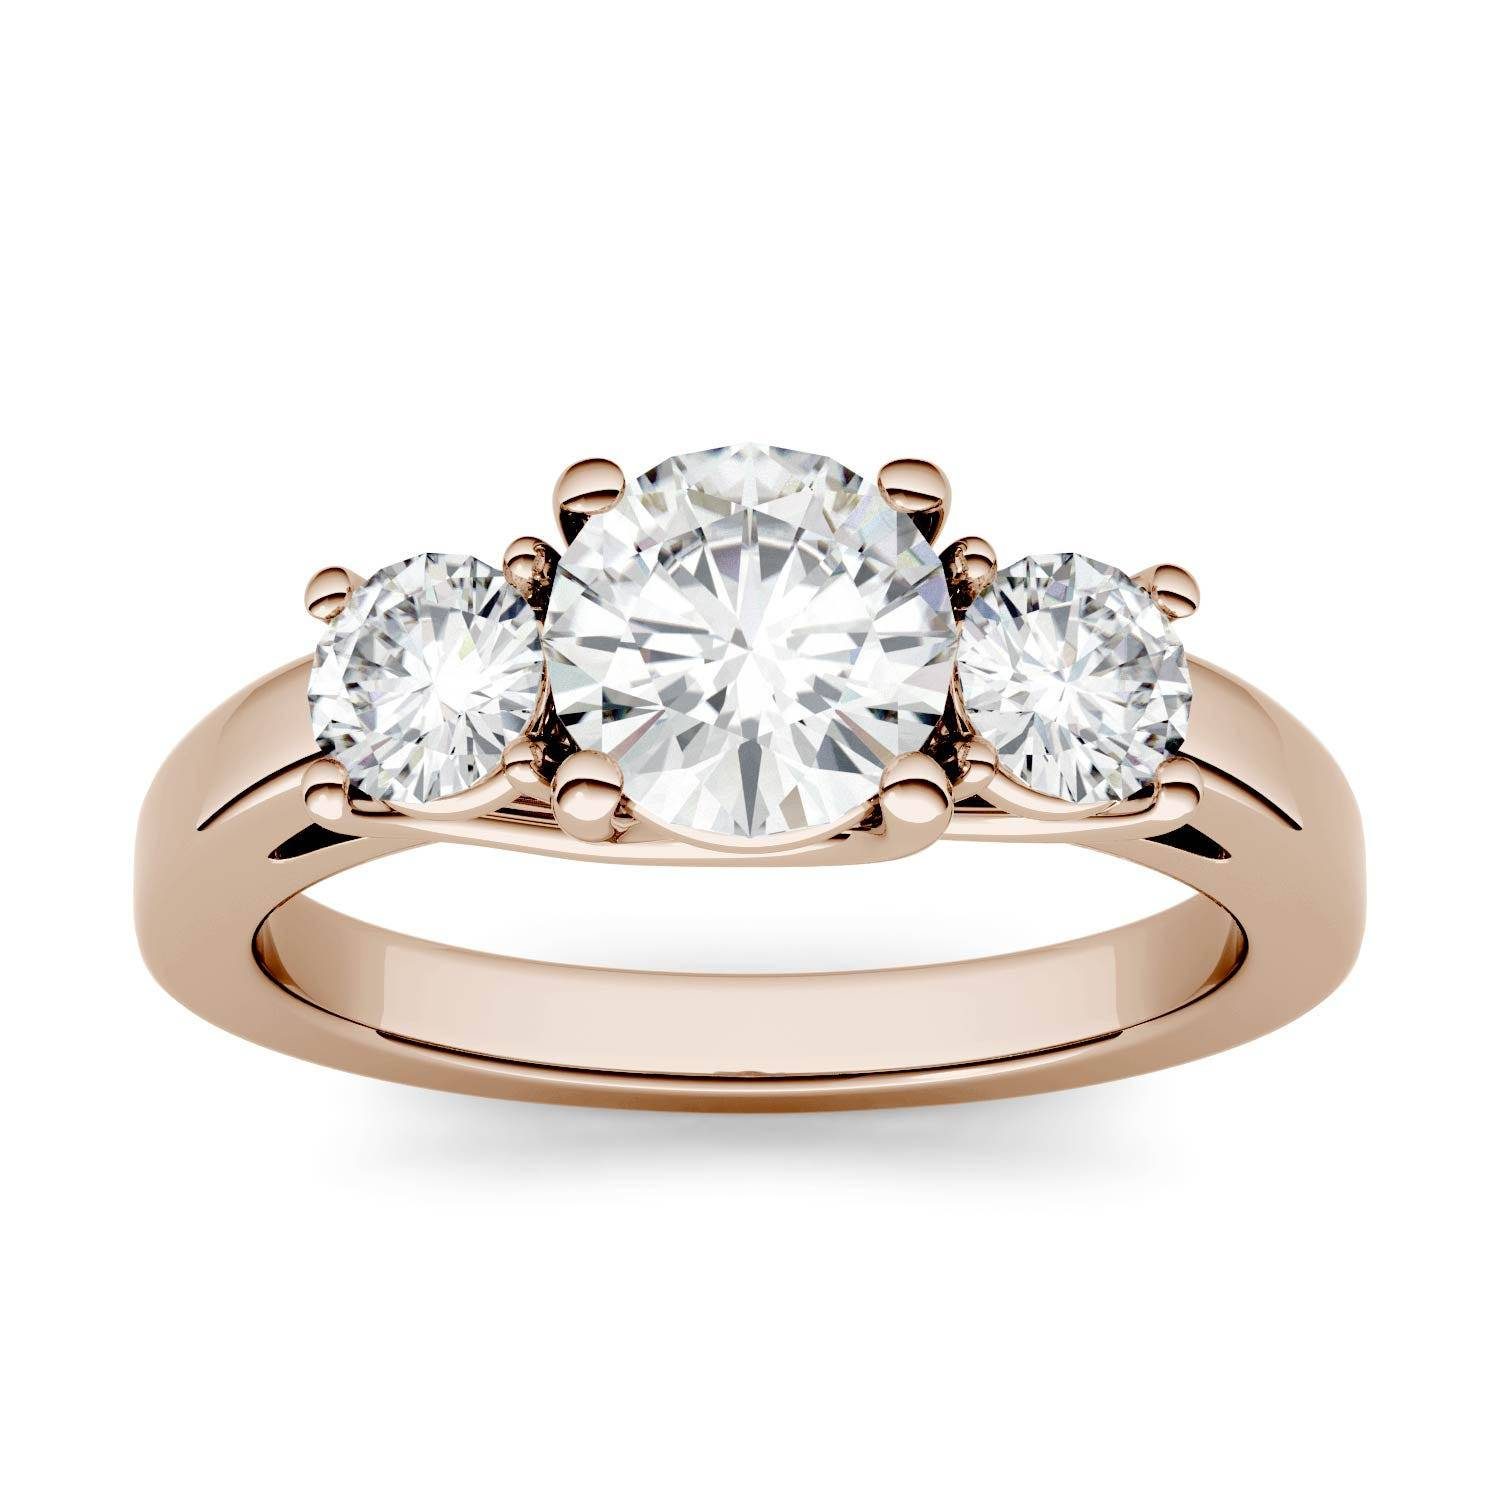 Charles & Colvard Trellis Three Stone Engagement Ring in 14K Rose Gold, Size: 8, 2.00CTW Round Forever One - Near-Colorless Moissanite Charles & Colvard  - Rose Gold - Size: 8